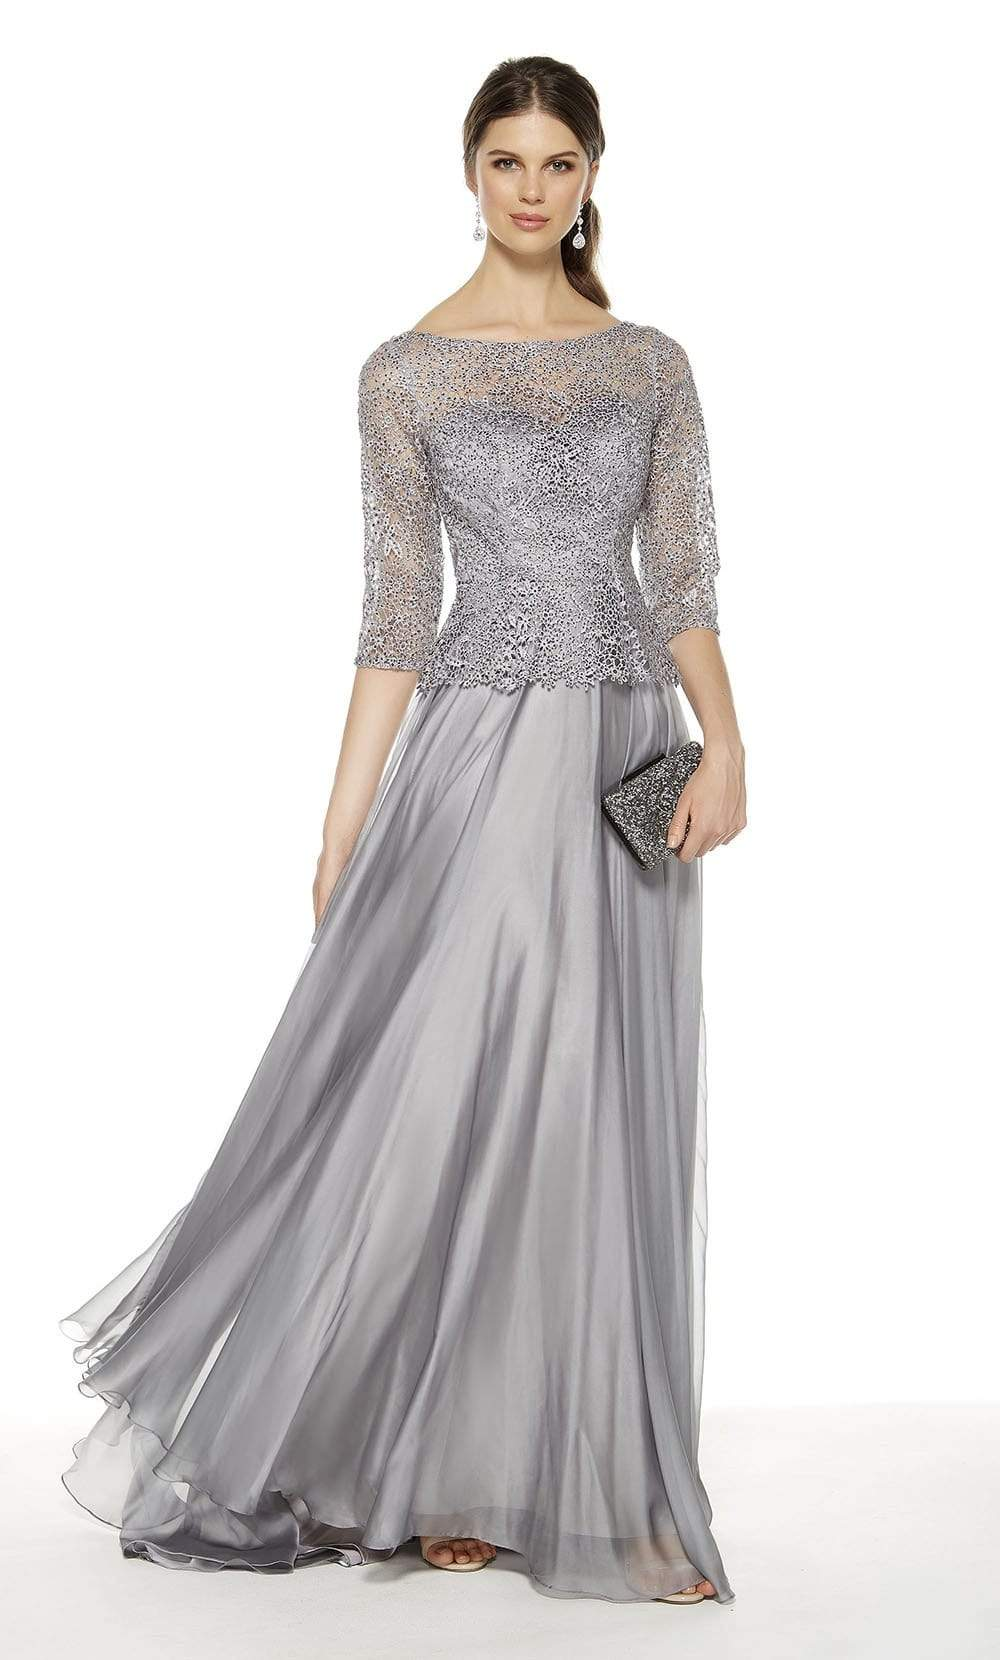 Alyce Paris - 27386 Quarter-Length Lace Sleeve Long Sheath Dress from Alyce Paris